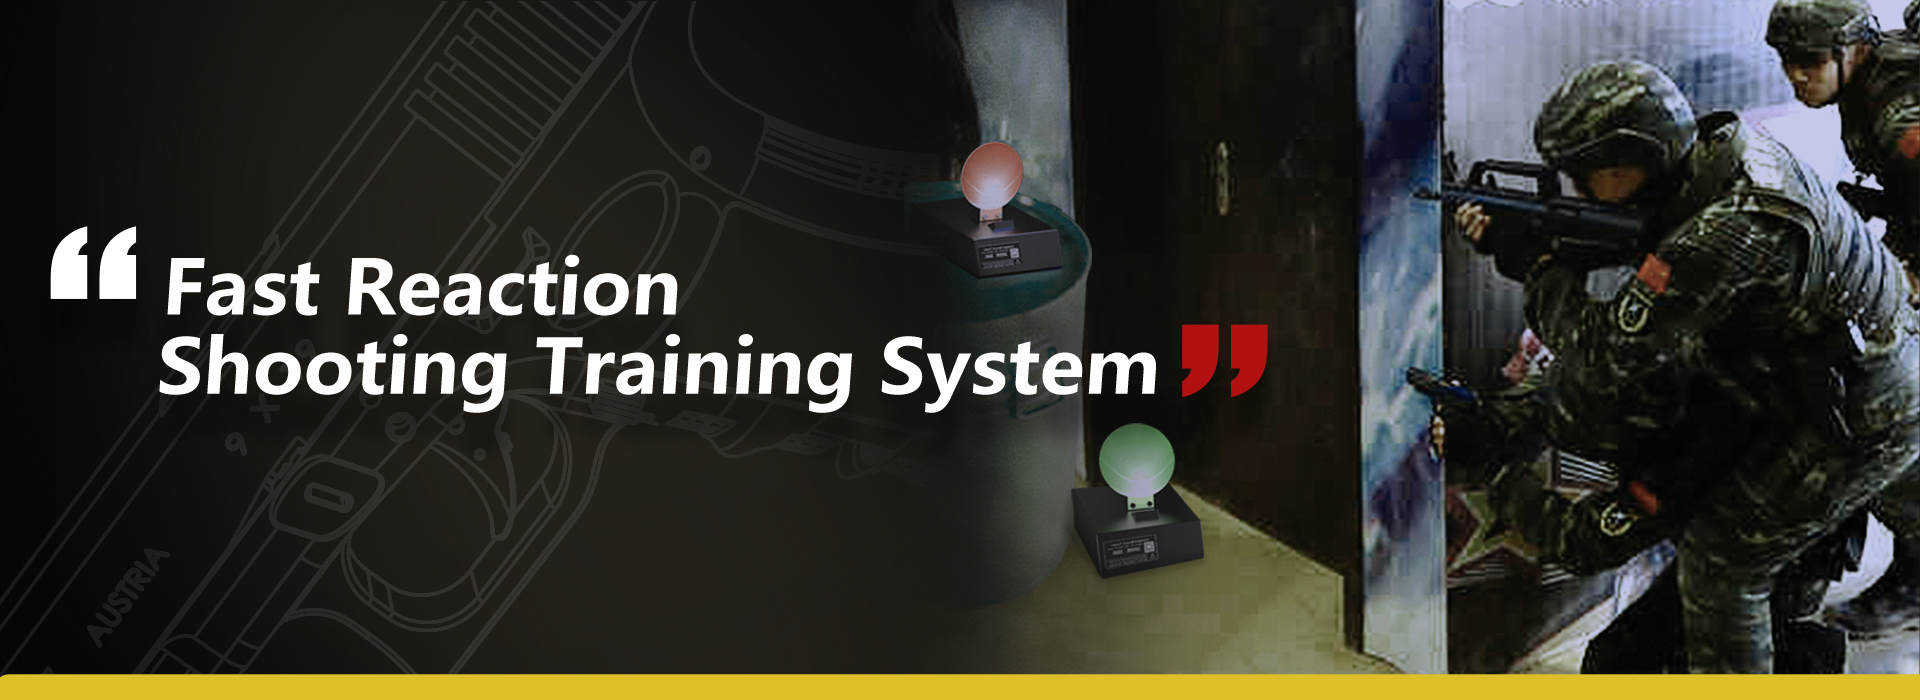 Mars Defense - Military and Police Simulation Training System Provider